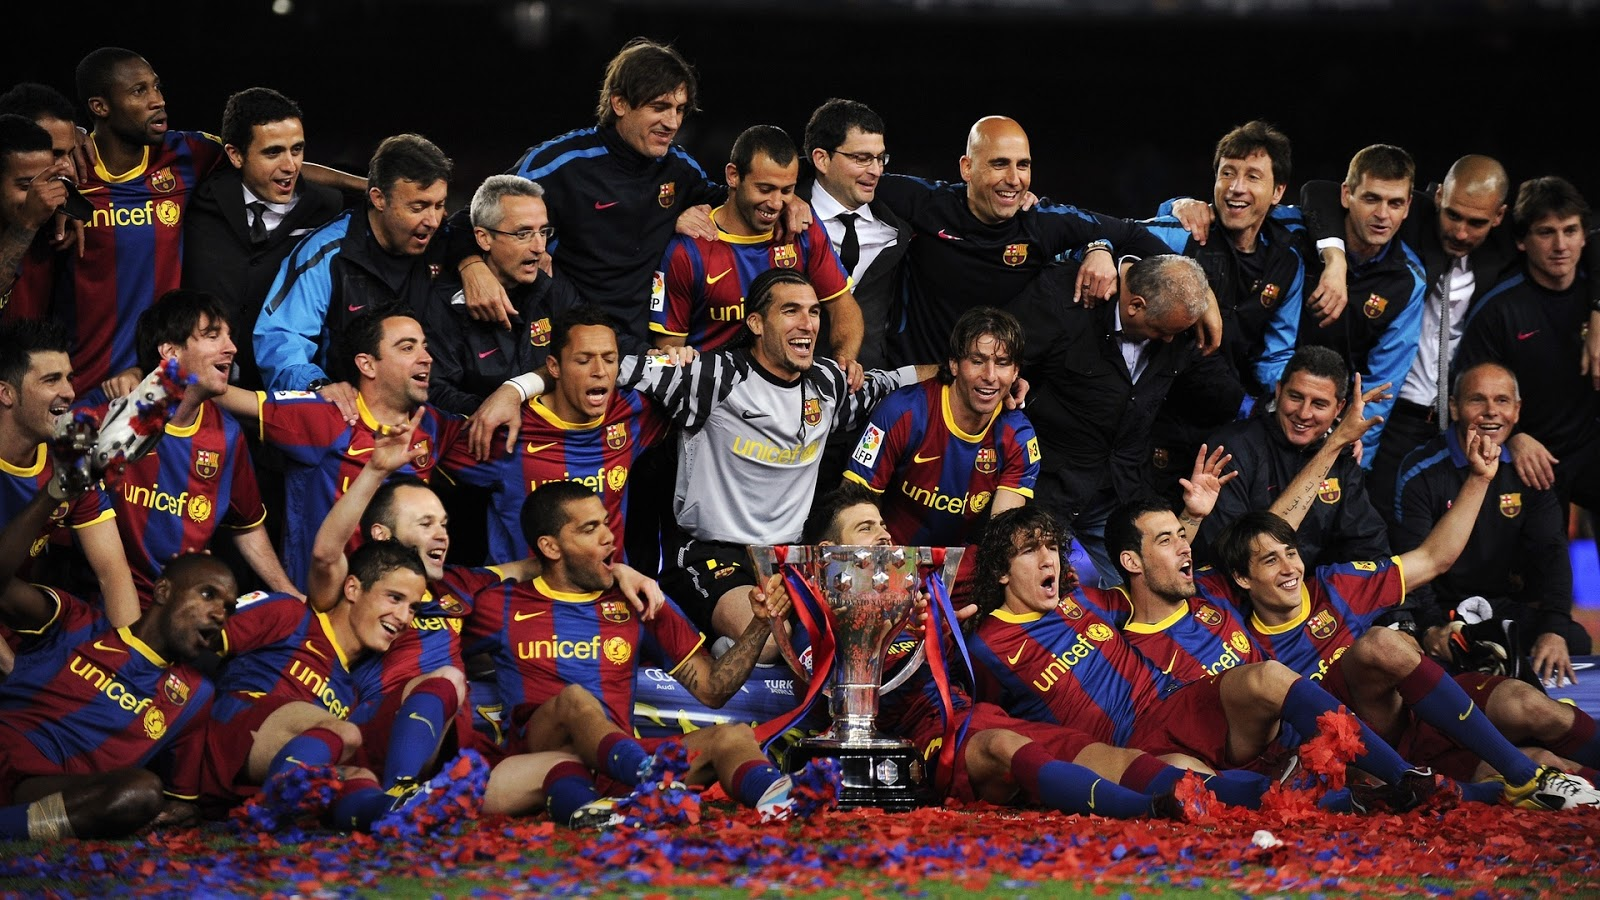 http://2.bp.blogspot.com/-8pXRSaa3SX8/UPElAfsHAyI/AAAAAAAAFkU/hUmjm-p78DU/s1600/FC+Barcelona+Team+Cool+HD+Wallpapers+2013_0.jpg